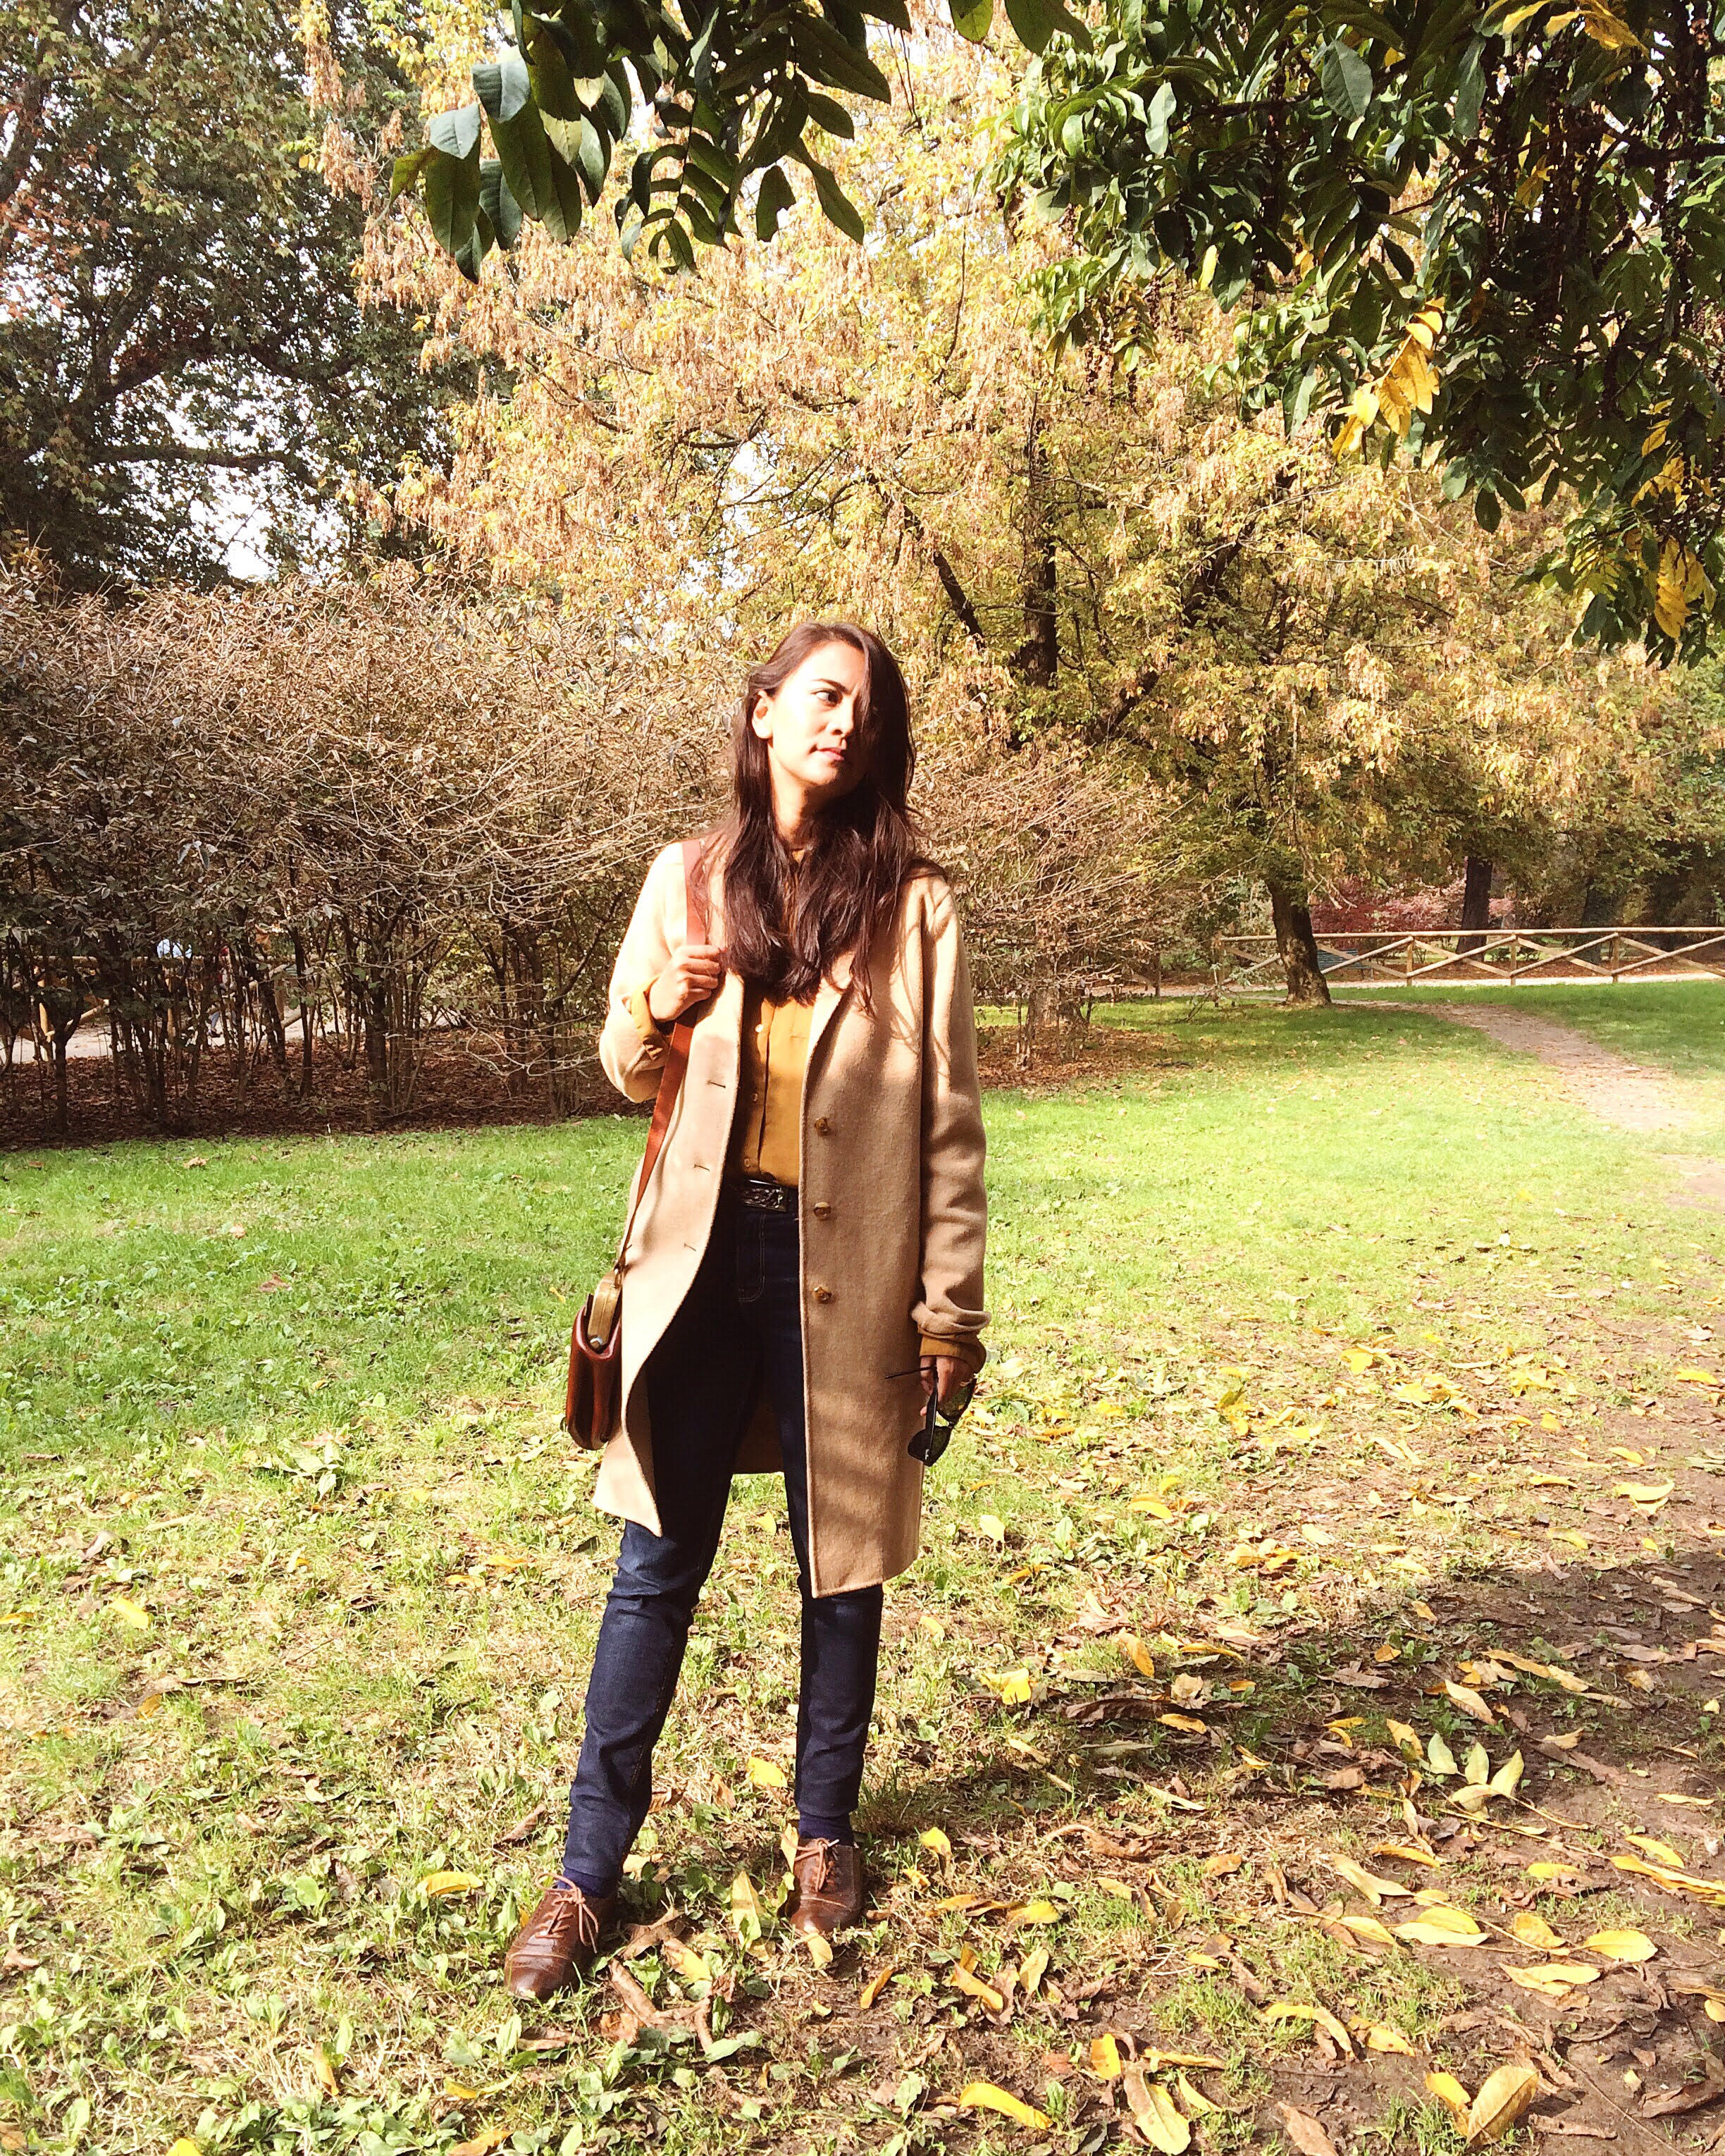 Me at Sempione Park, Coat-The Gap, Top-Sarojini Nagar, Jeans-Zara, Shoes-Aldo, Bag-Pfiebo